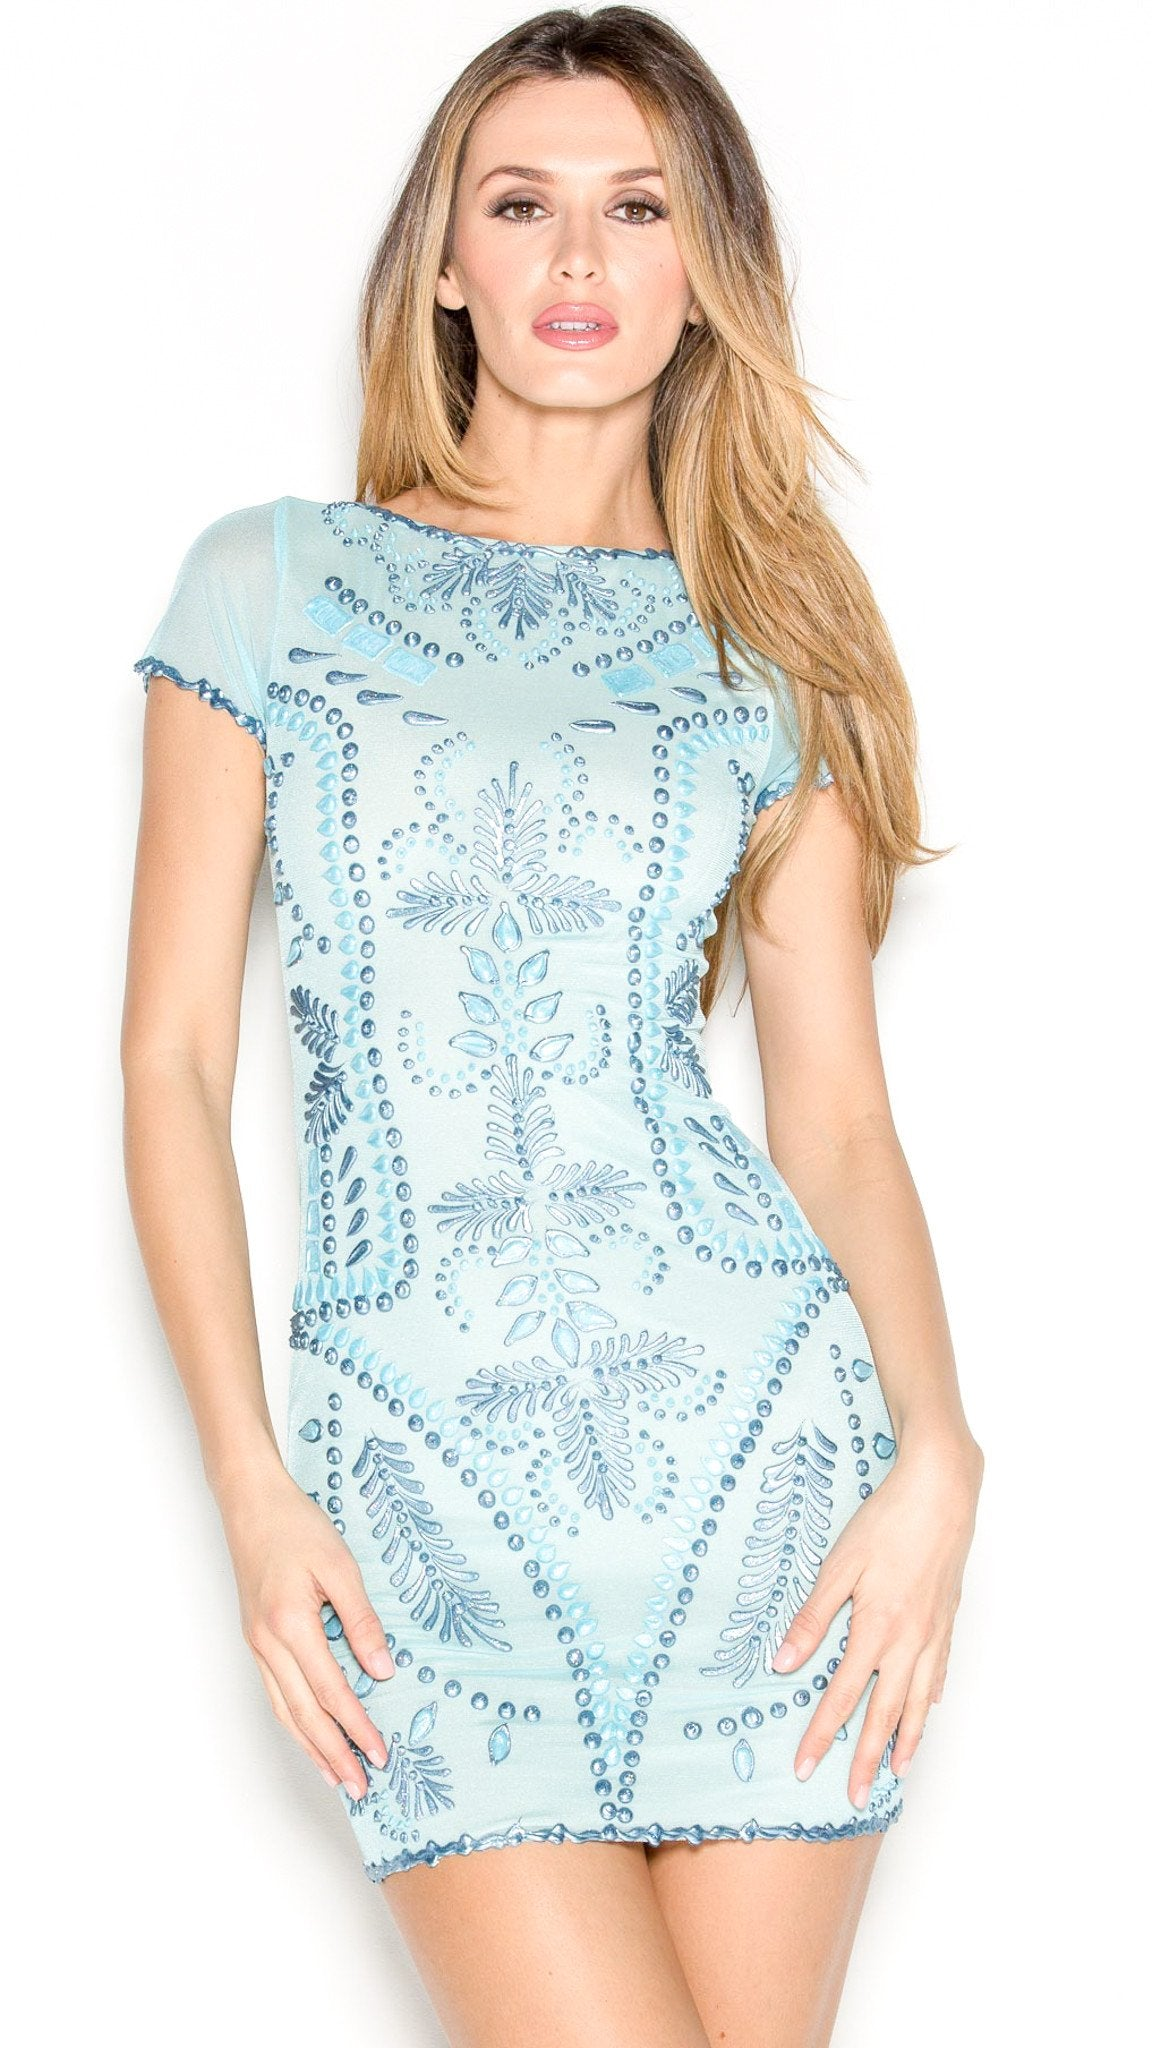 MEITAL DRESS IN BABY BLUE